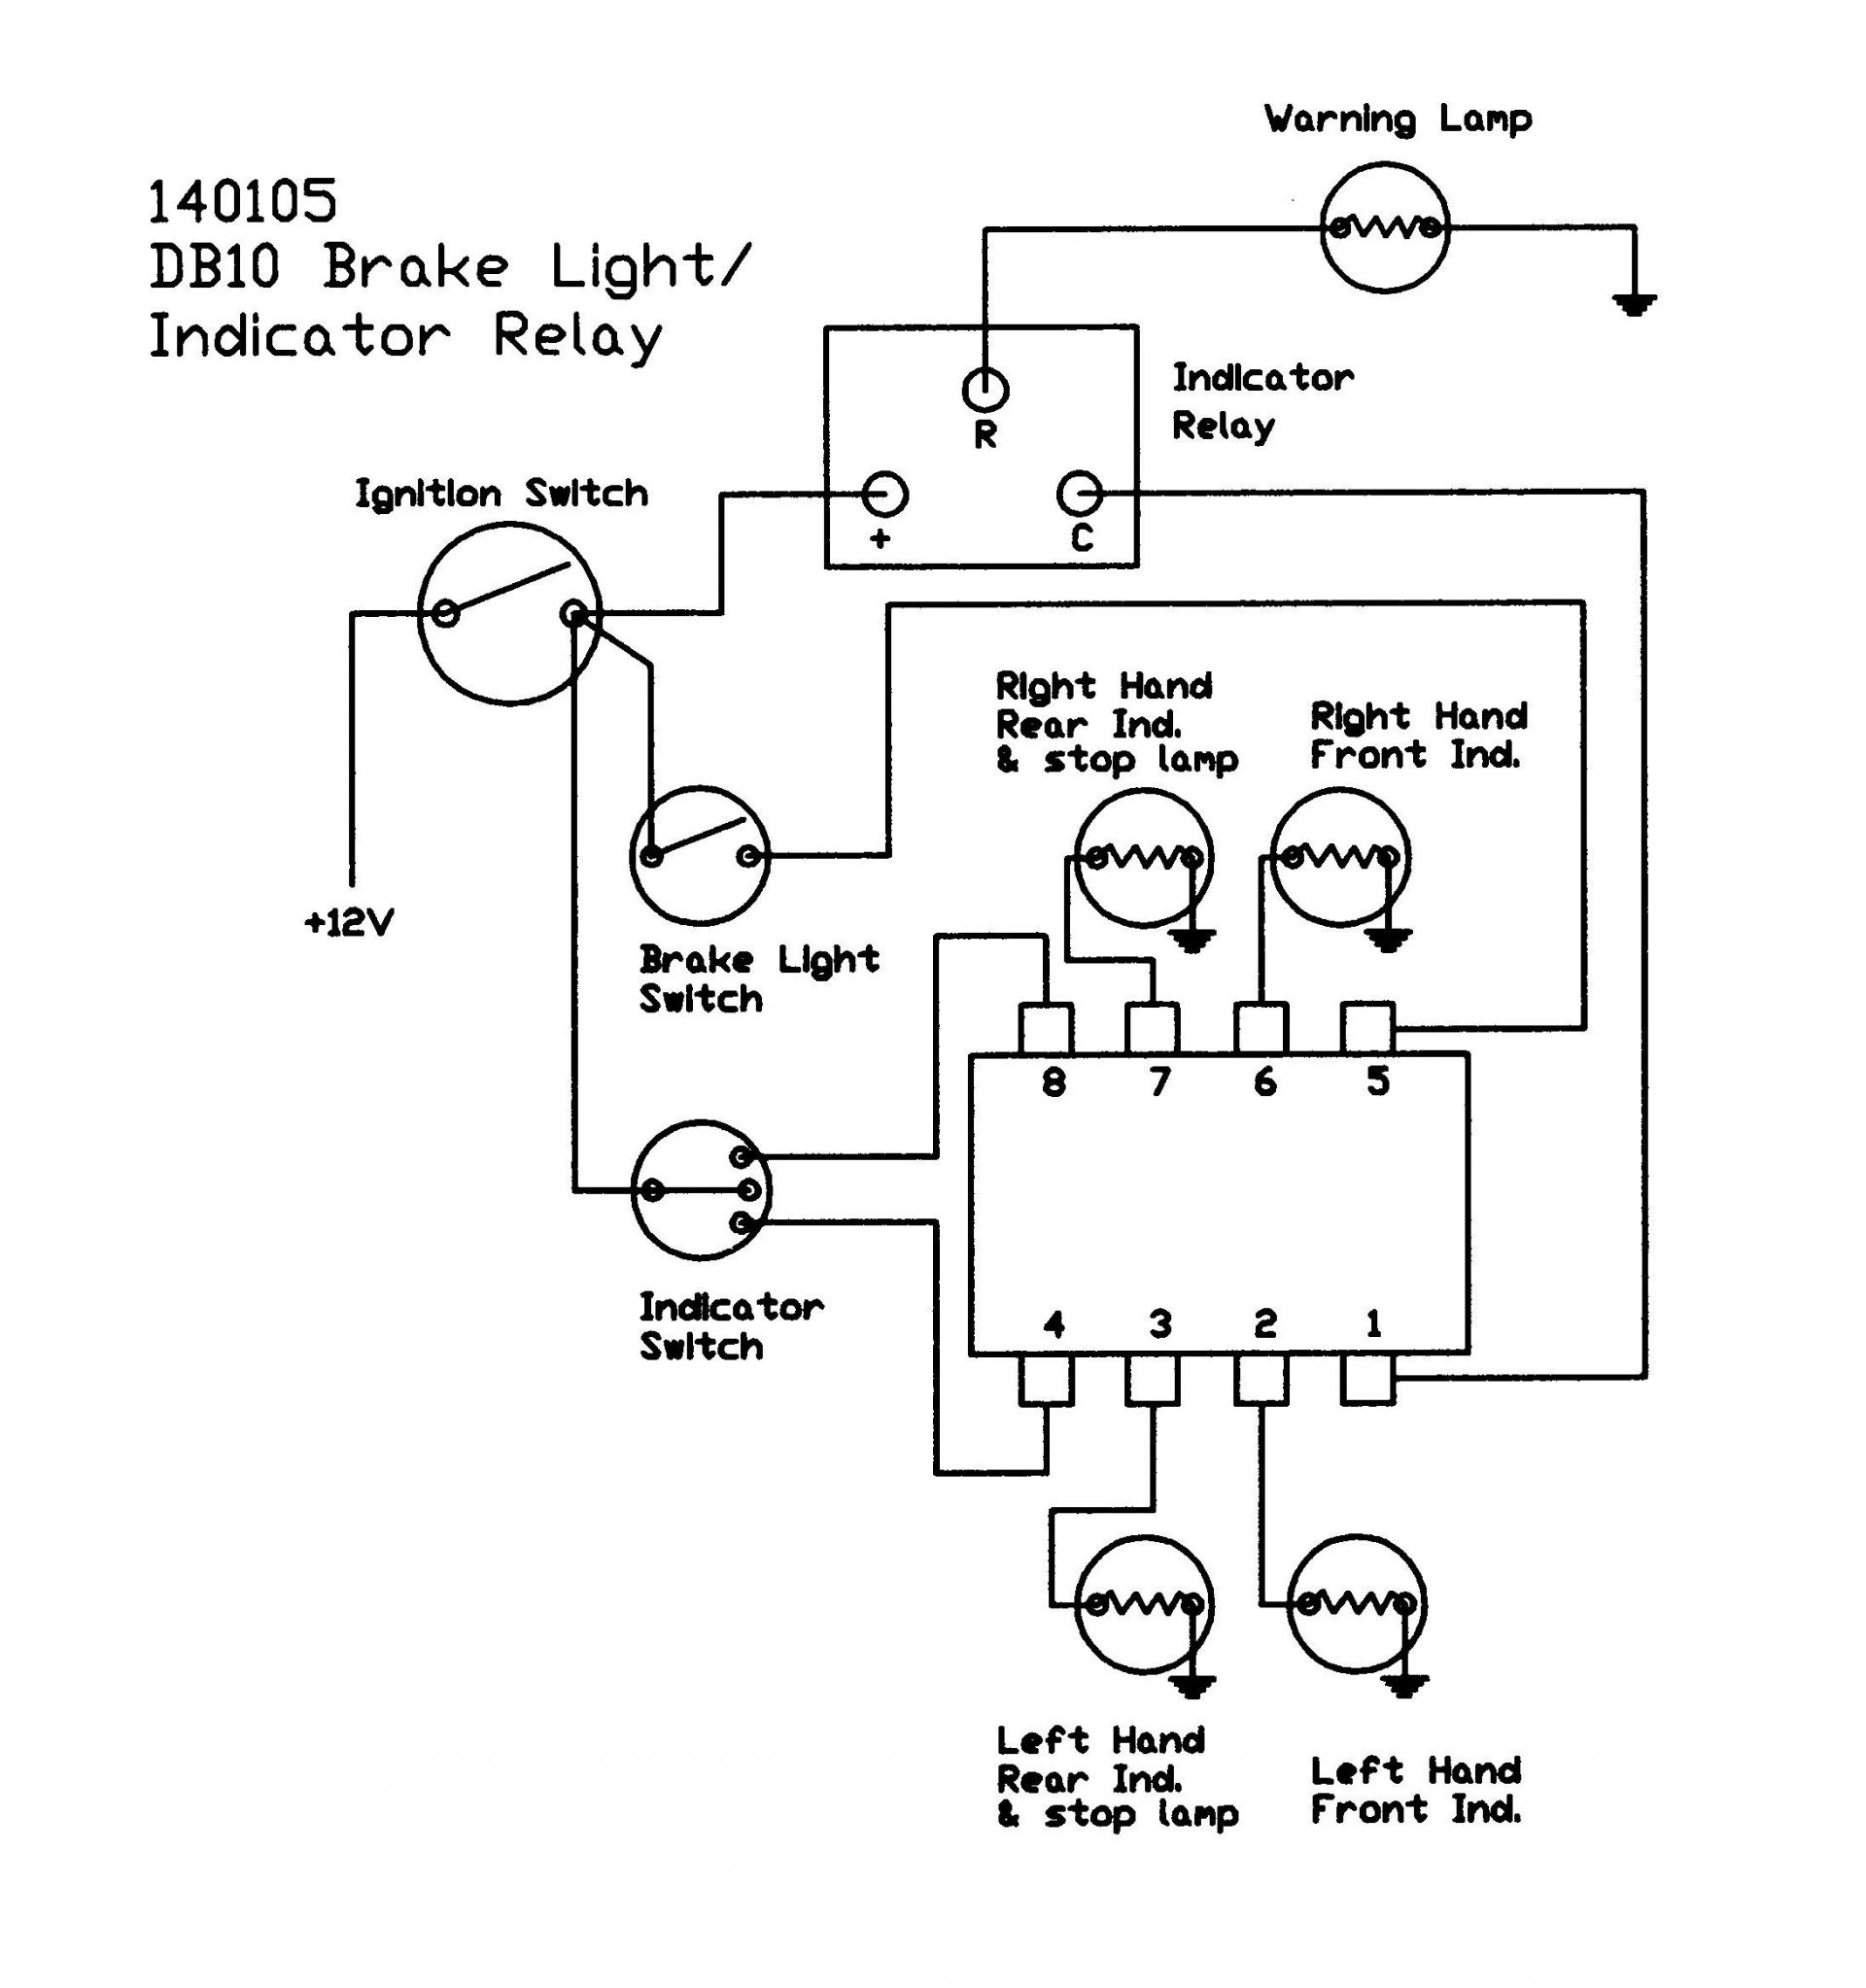 Light Switch Drawing At Free For Personal Use Wiring A To Another 1920x2046 Diagram Dimmer In The Uk Copy 3 Gang